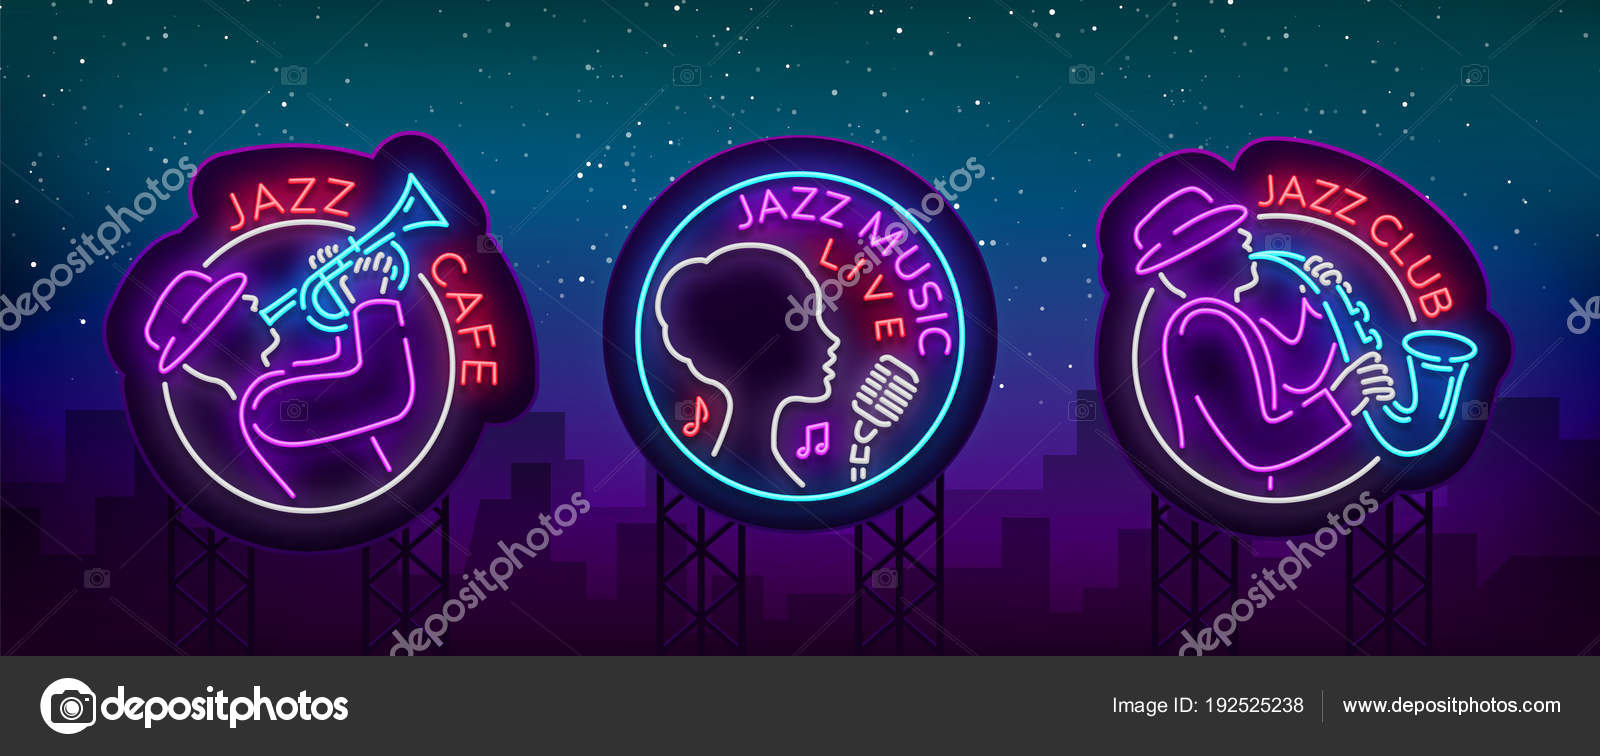 Jazz Music Collection Of Logos In Neon Style Set Of Neon Sign